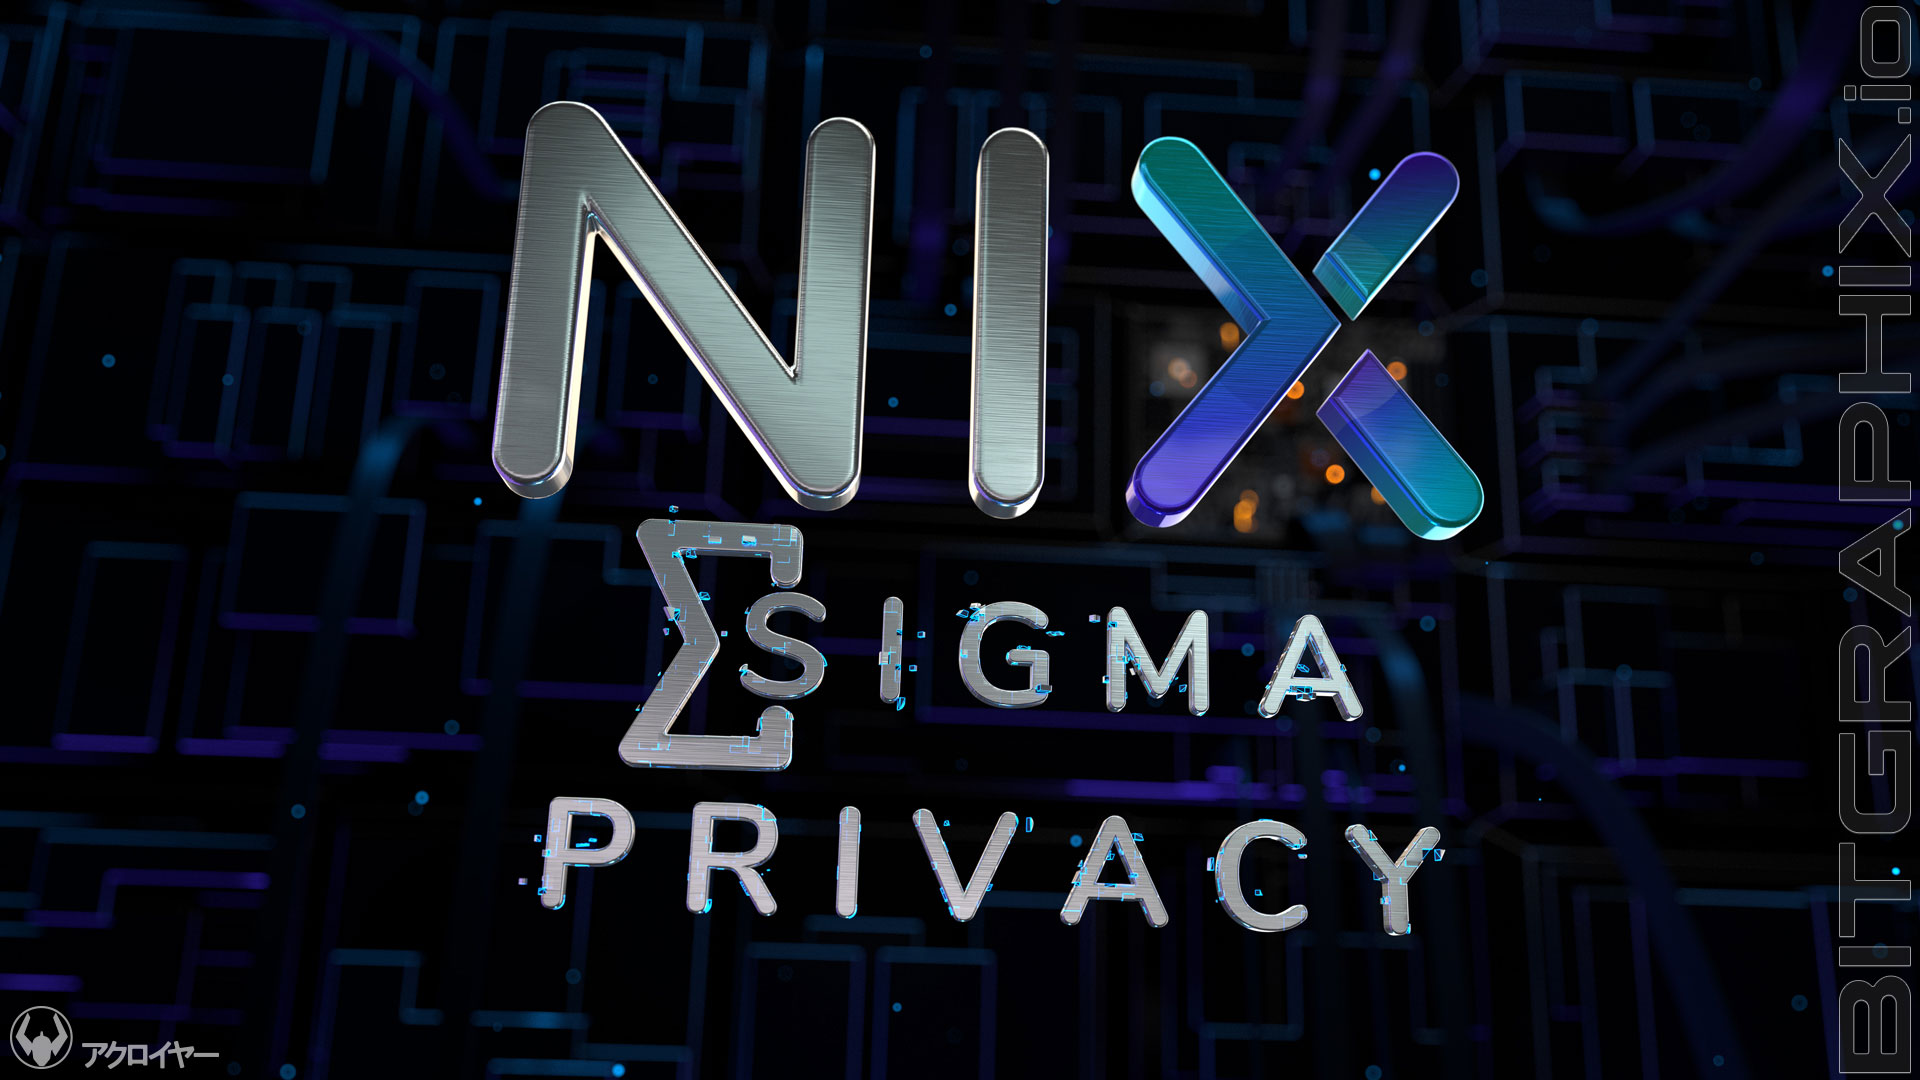 NIX-Platform-Ghost-Protocol-promotional-animation-still-frame-sigma-privacy-logo-build-detail-3d-vfx-redshift-render